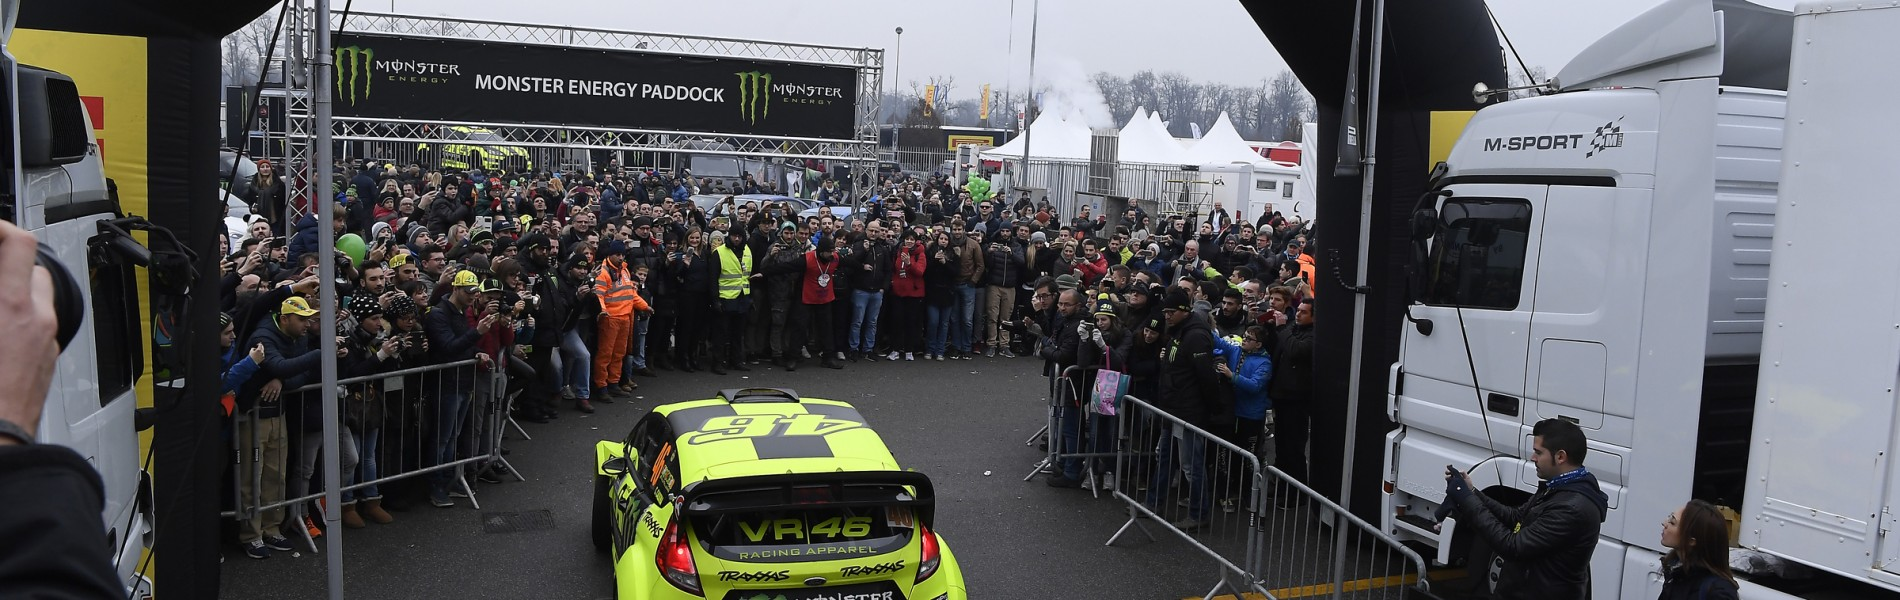 Pictures from Monza Rally Show sunday - Milagro